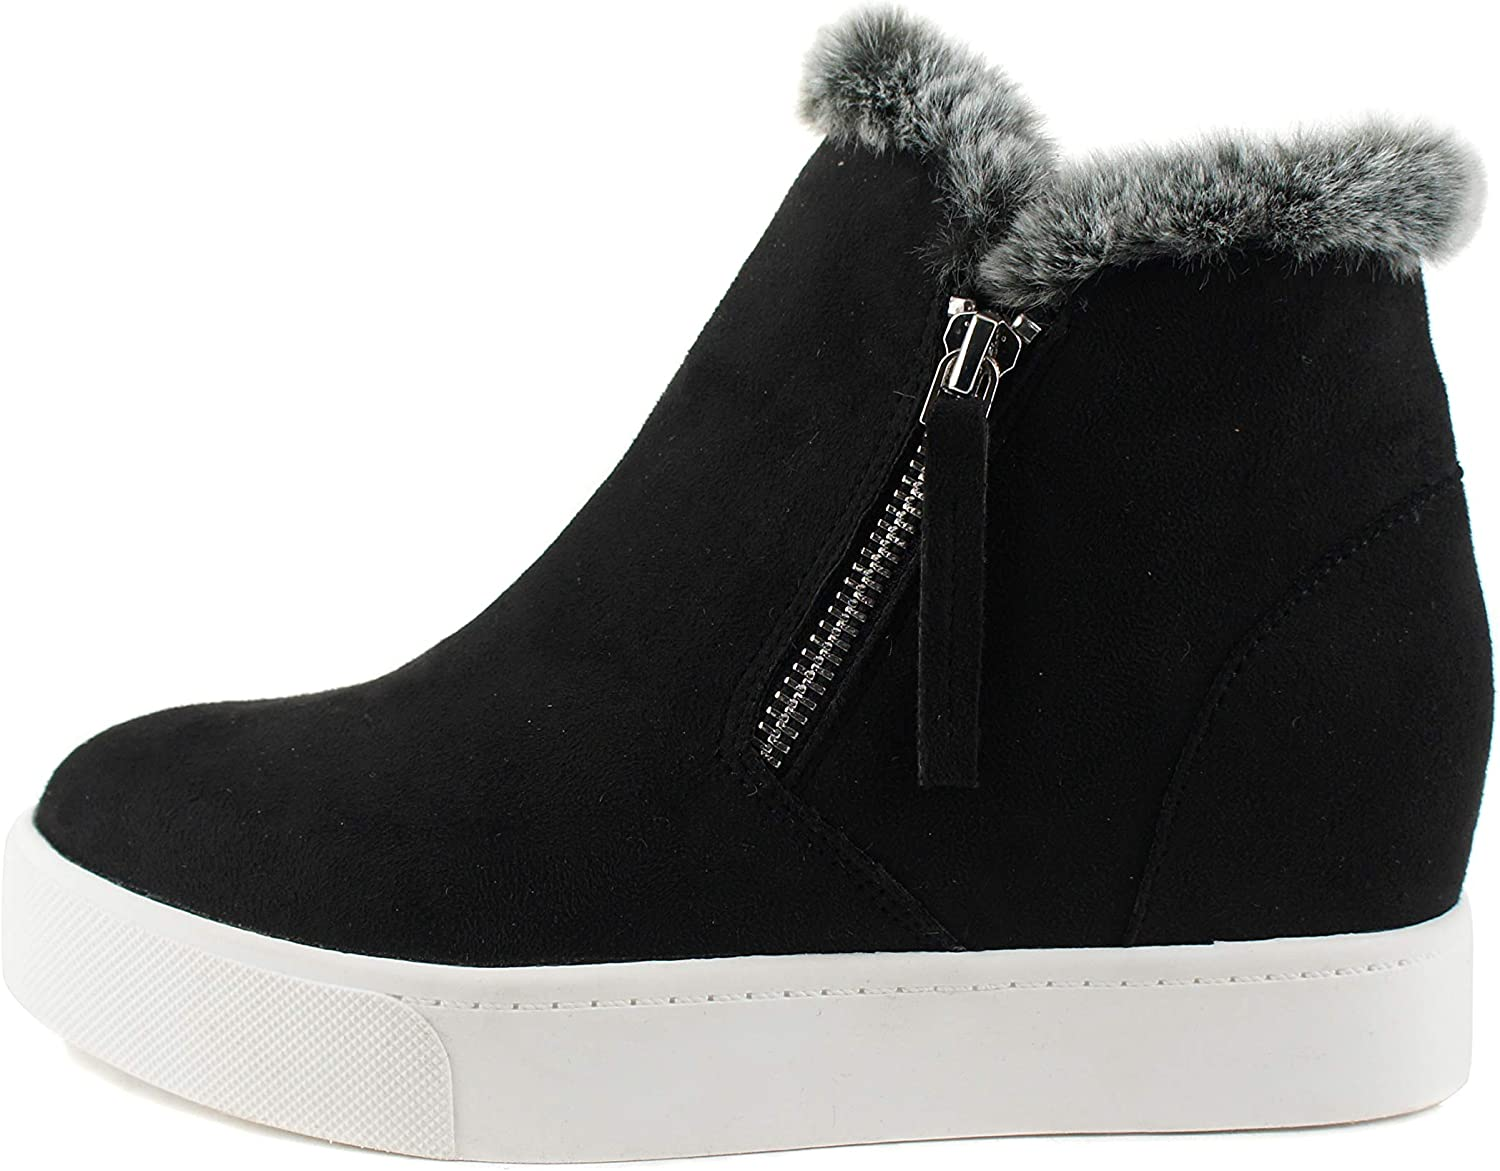 Soda Style Outing – Hidden Wedge Fashion Sneaker Bootie with Fur Collar and Side Zipper